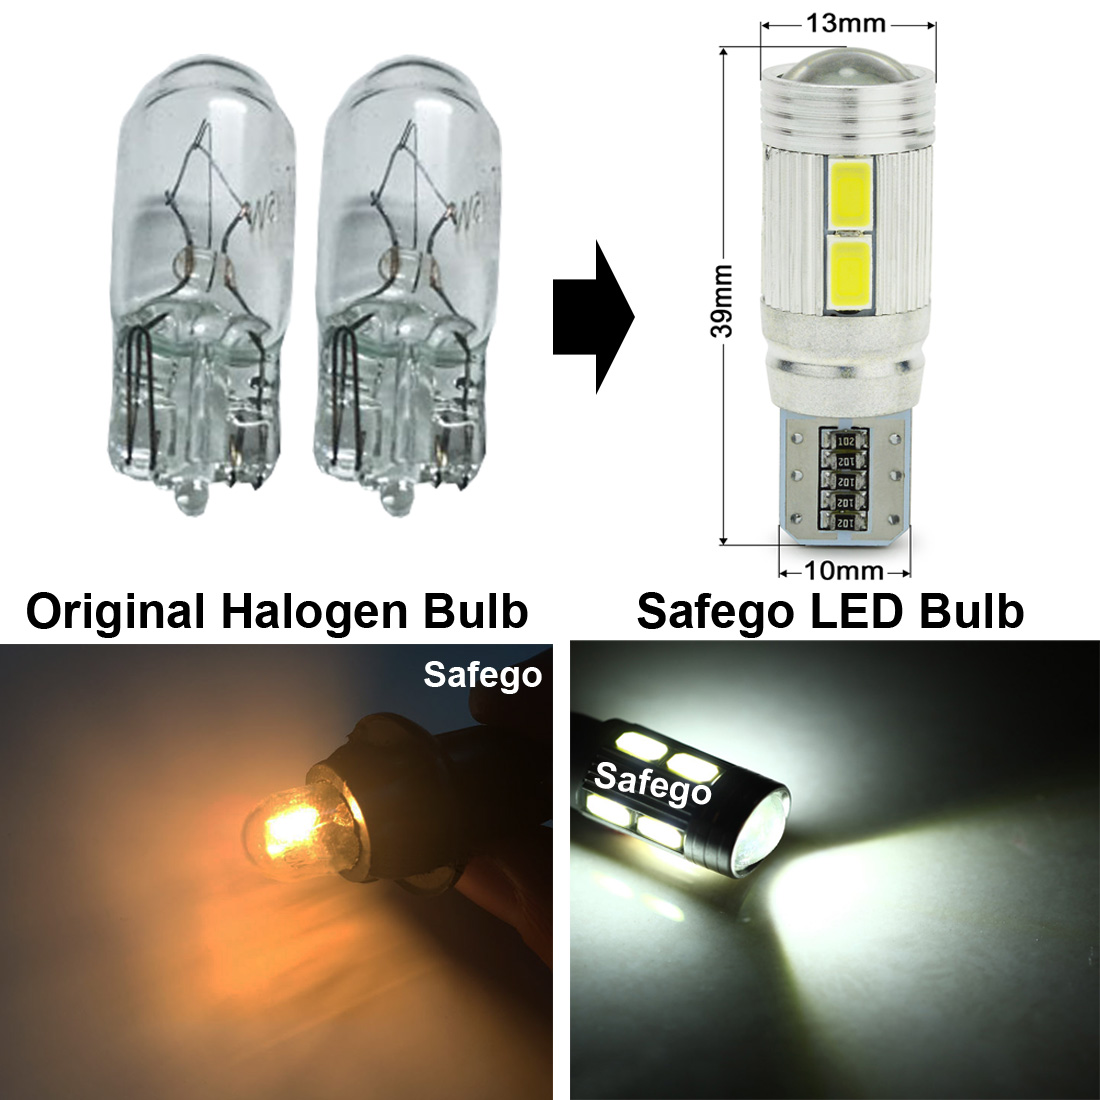 Image 3 - Safego 10x LED T10 Canbus Error Free Car W5W 10 smd 5730 194 168 LED Light Bulb led light parking T10 LED Car Side Light-in Signal Lamp from Automobiles & Motorcycles